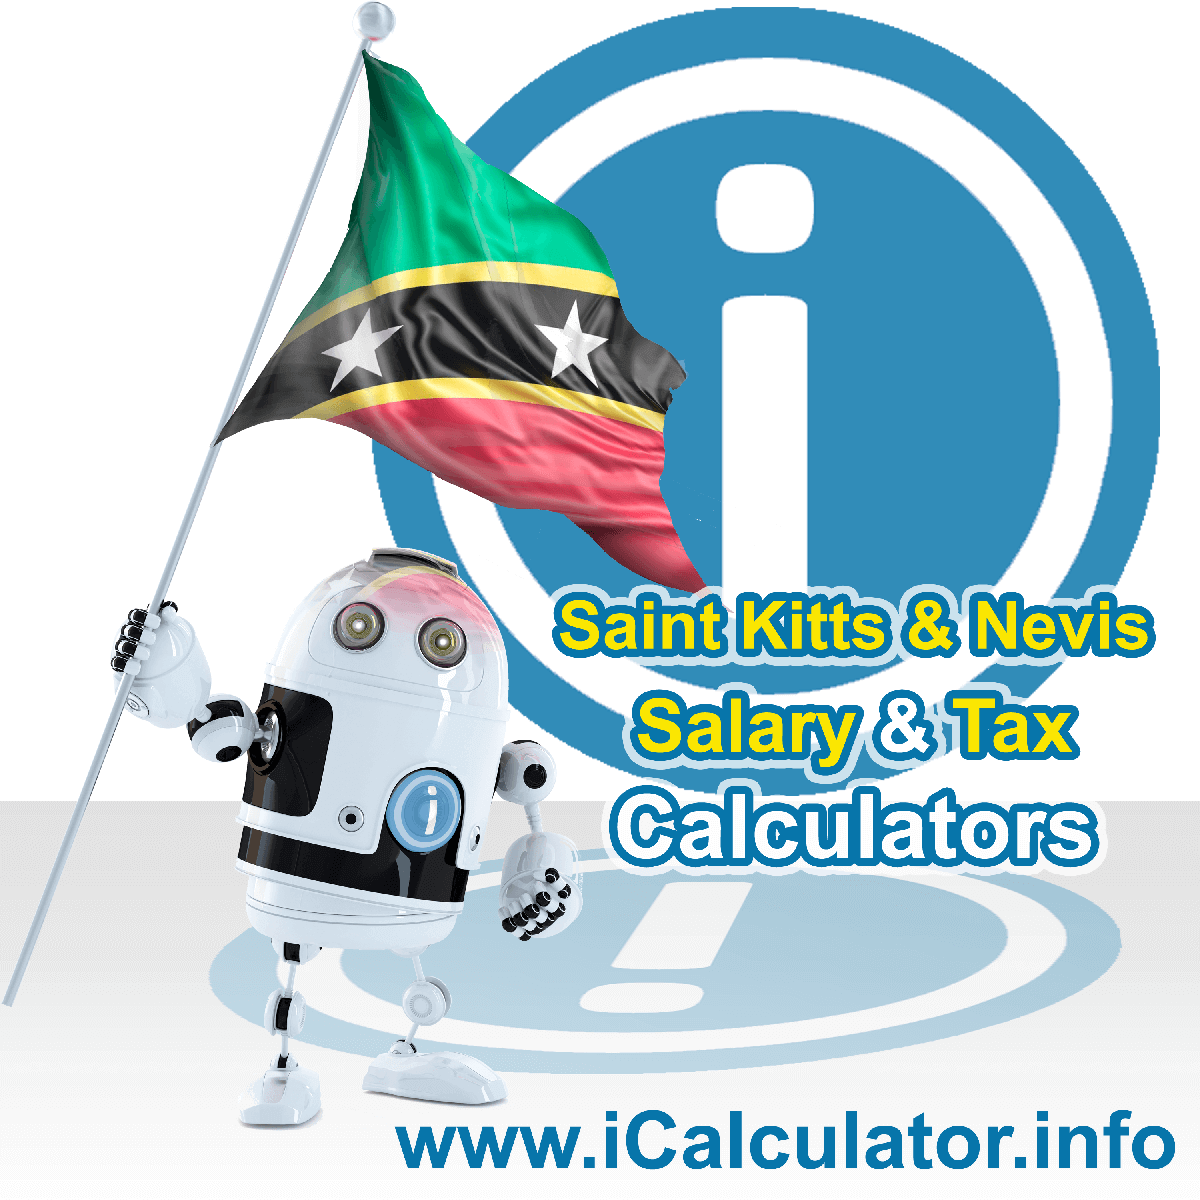 Saint Kitts And Nevis Wage Calculator. This image shows the Saint Kitts And Nevis flag and information relating to the tax formula for the Saint Kitts And Nevis Tax Calculator